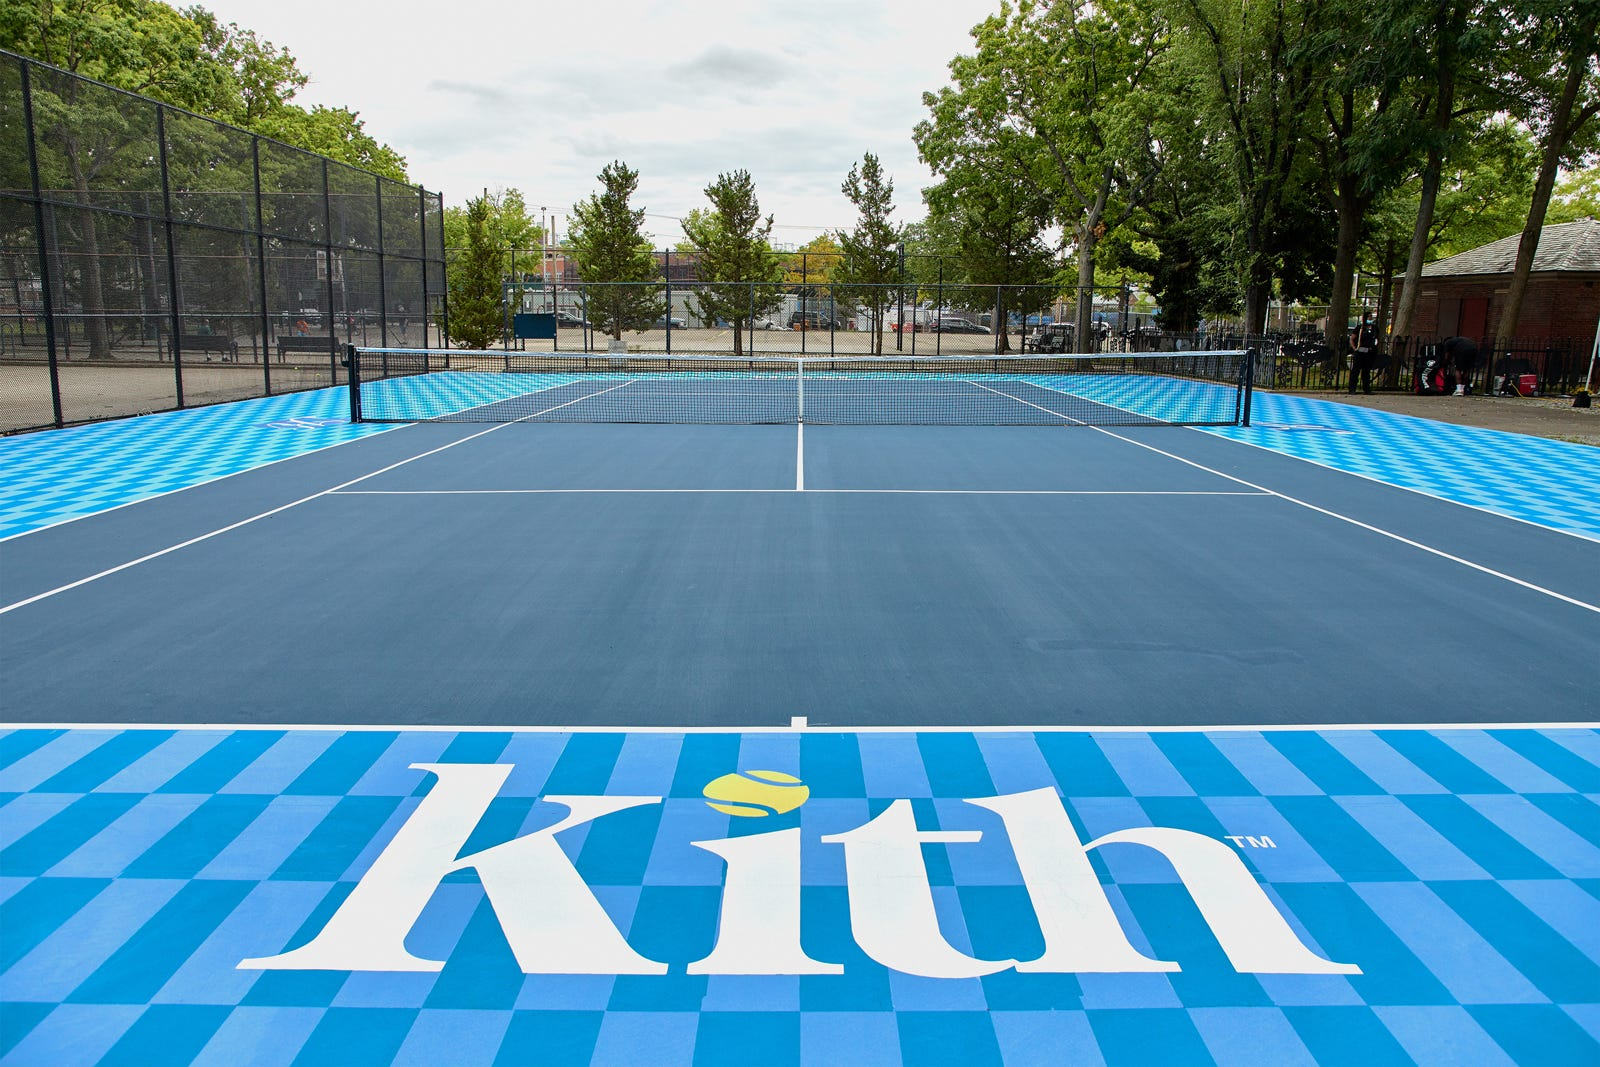 the design of the court with kith logo